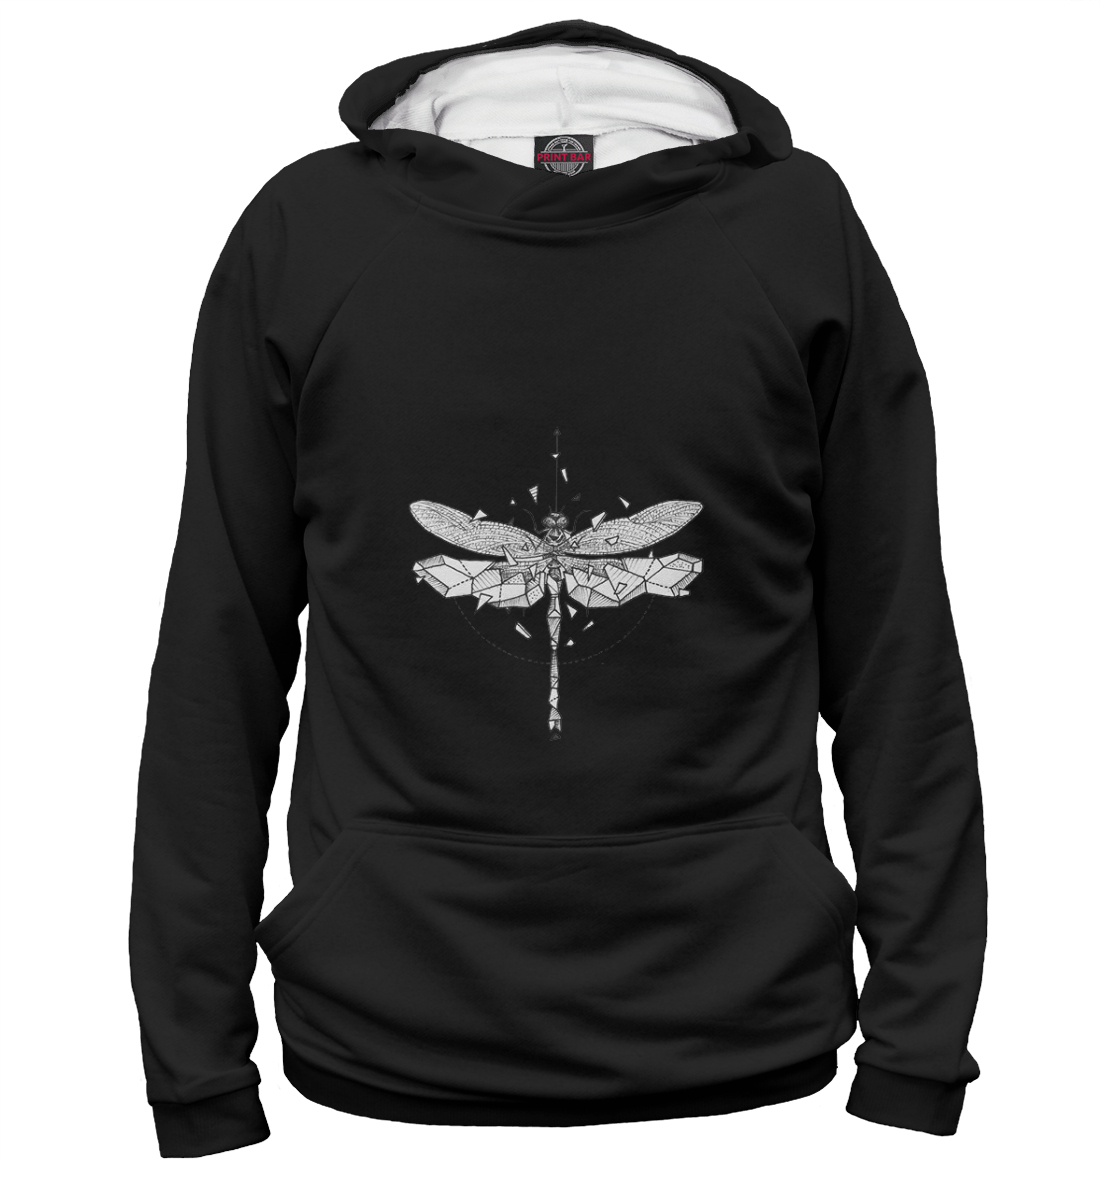 Купить Geometric dark dragonfly, Printbar, Худи, HIP-238180-hud-1